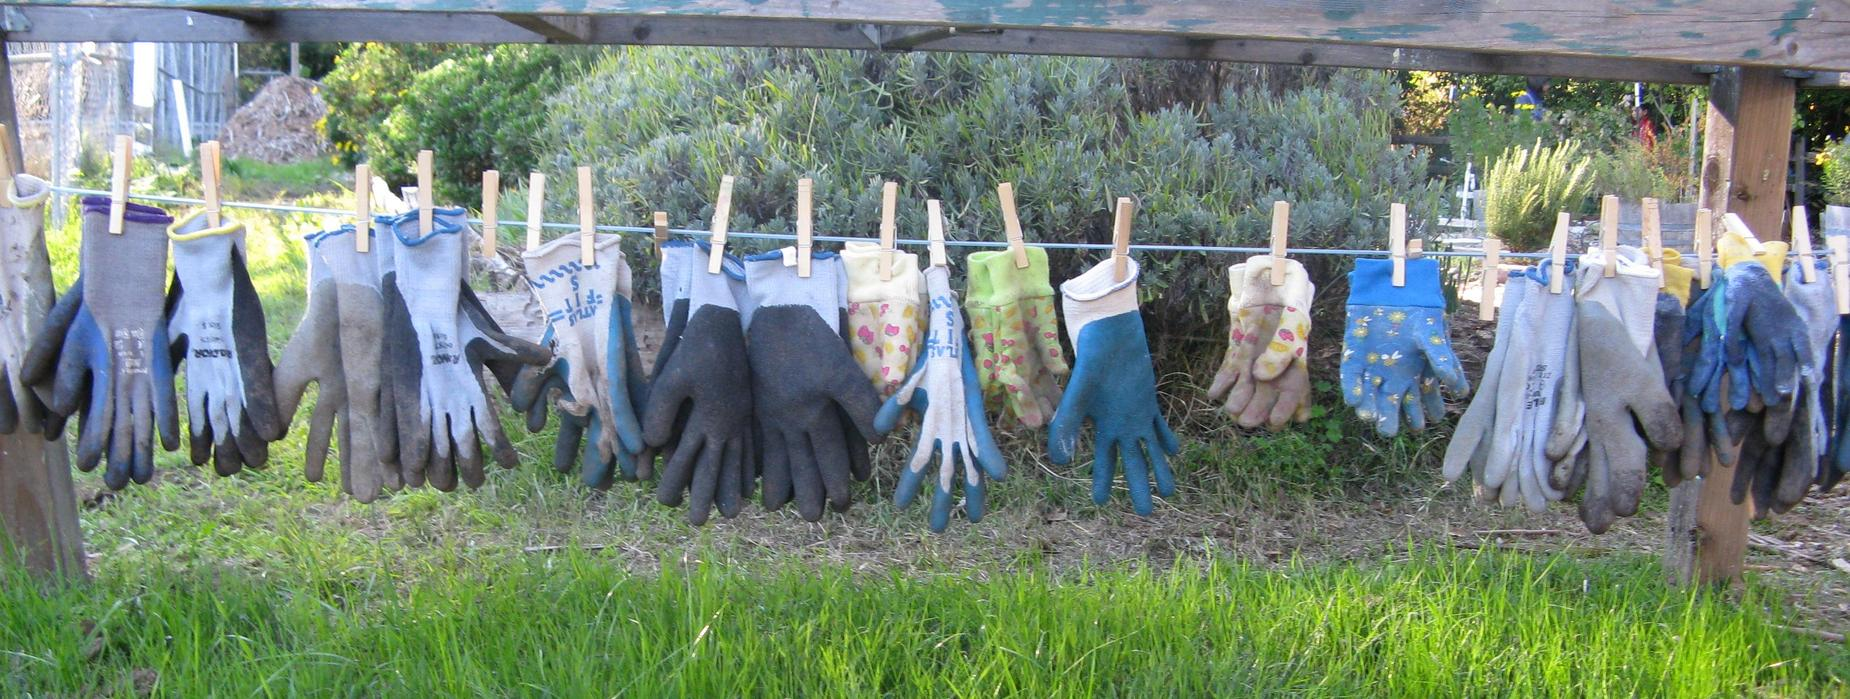 West Side School garden gloves hanging